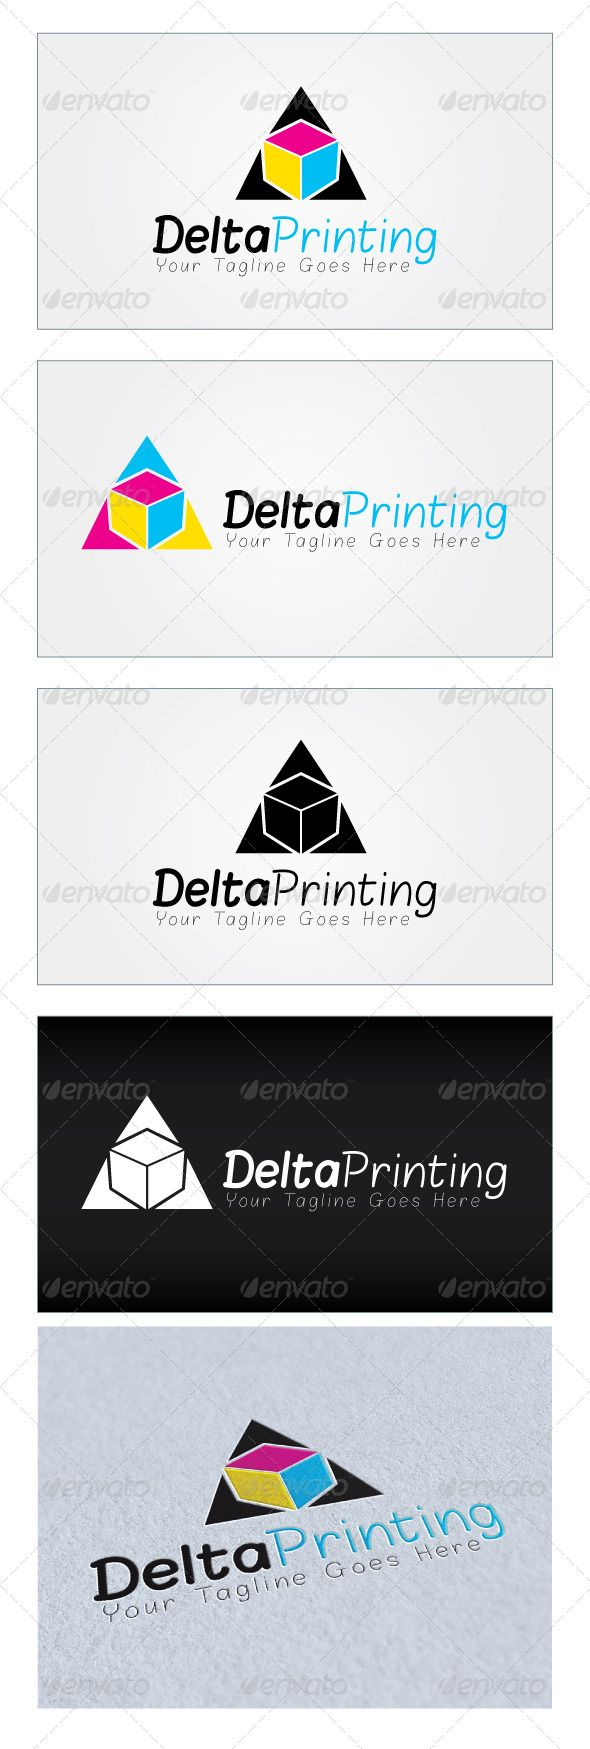 Delta Printing Logo Template GraphicRiver Re sizable